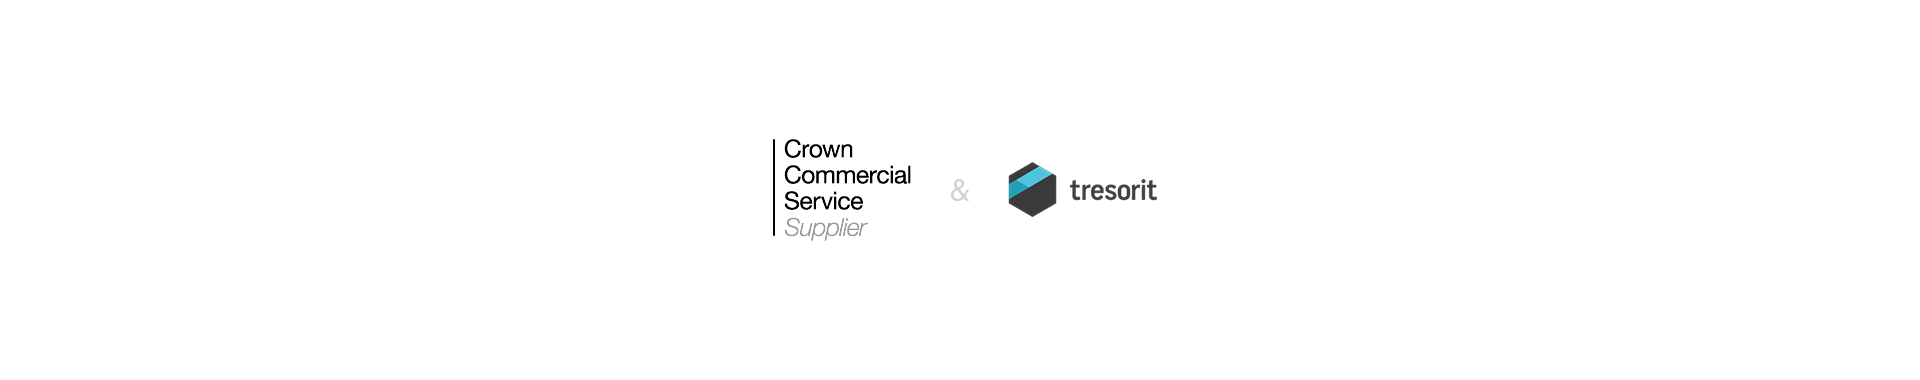 Tresorit is available to UK public sector organizations on G-Cloud 9